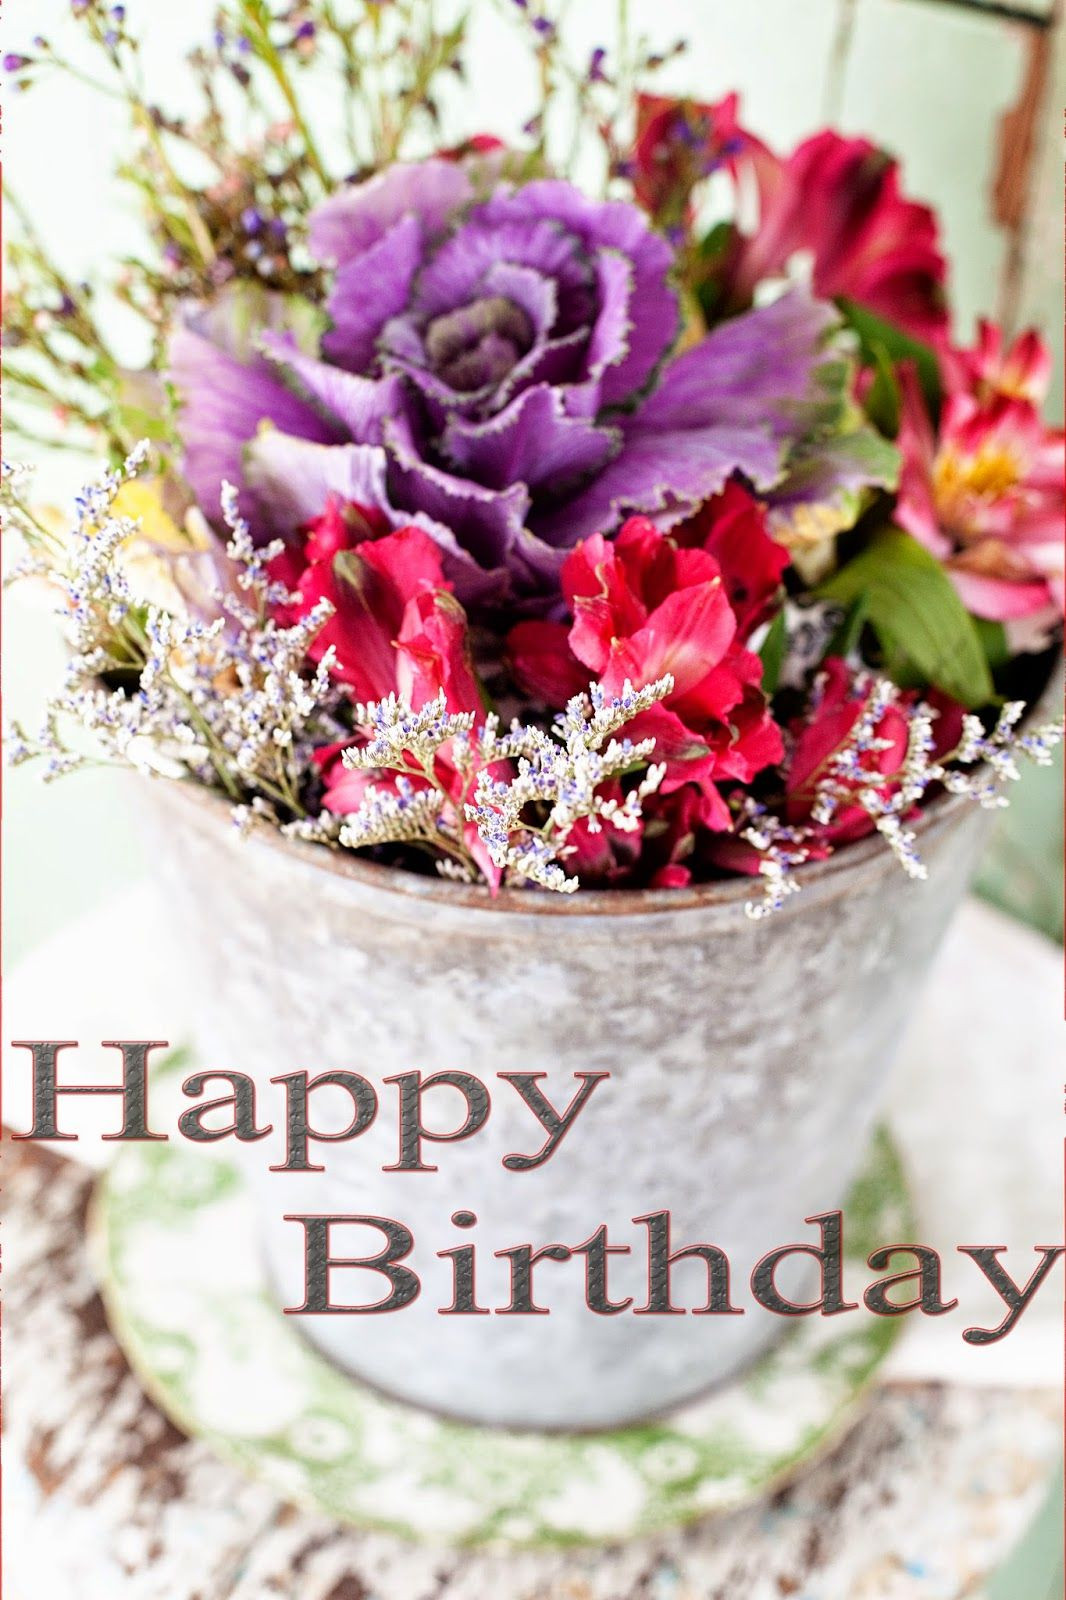 Best ideas about Happy Birthday Flowers And Cake . Save or Pin Happy birthday flowers images Now.